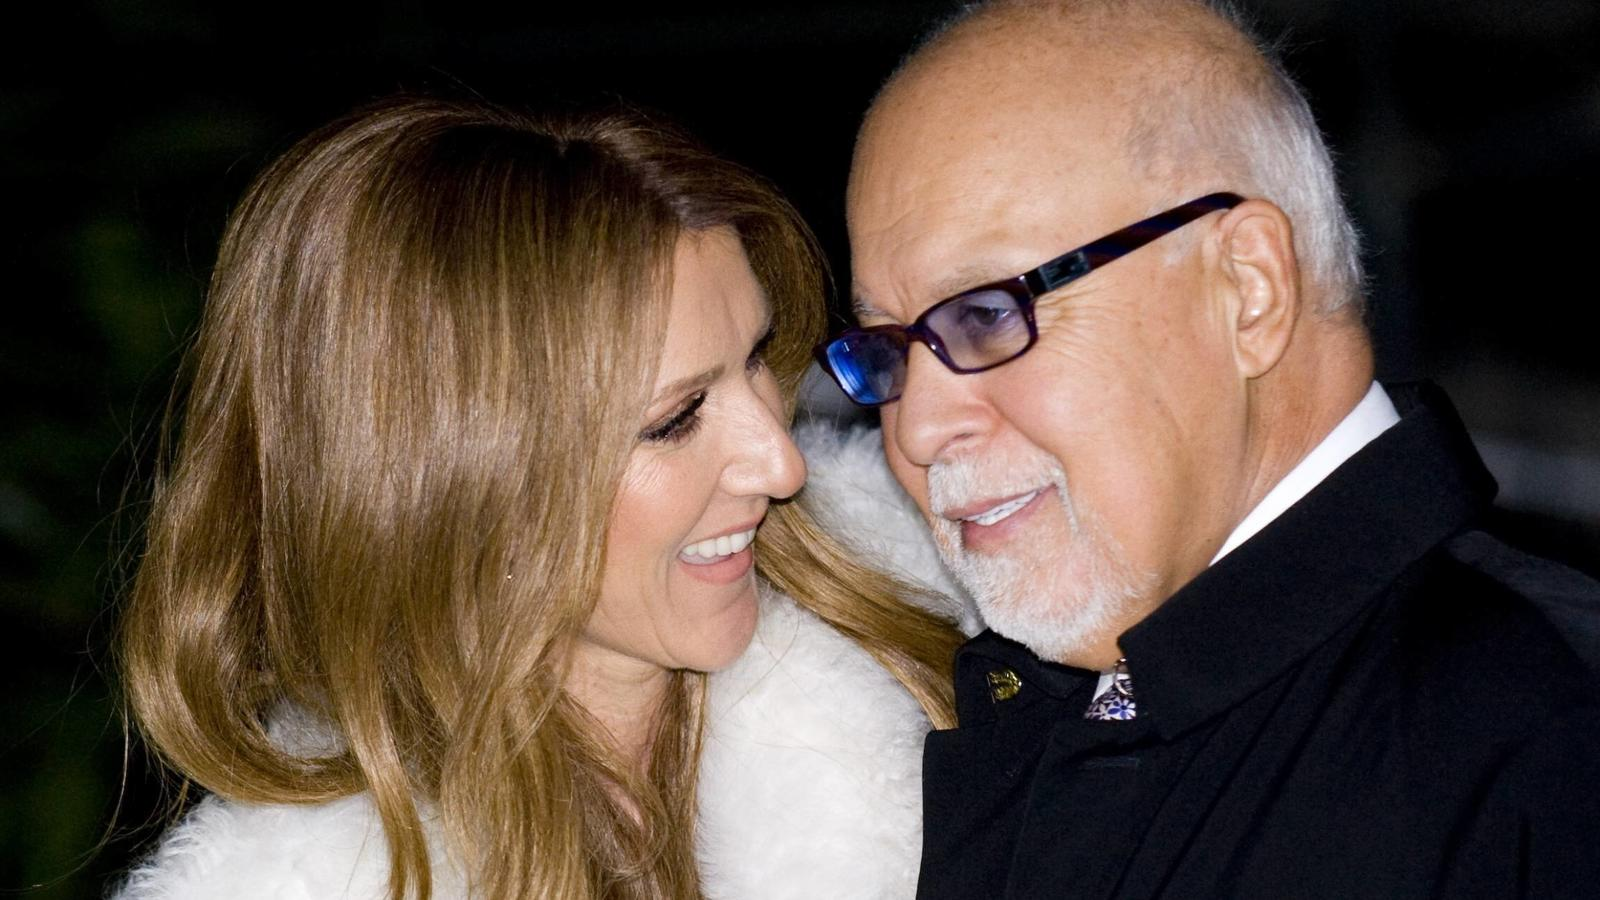 Celine Dion mit Ehemann Rene Angelil in Paris -  JBAutissier/Panoramic PUBLICATIONxNOTxINxFRAxITAxBELCeline Dion with Husband René Angelil in Paris JBAutissier Panoramic PUBLICATIONxNOTxINxFRAxITAxBEL